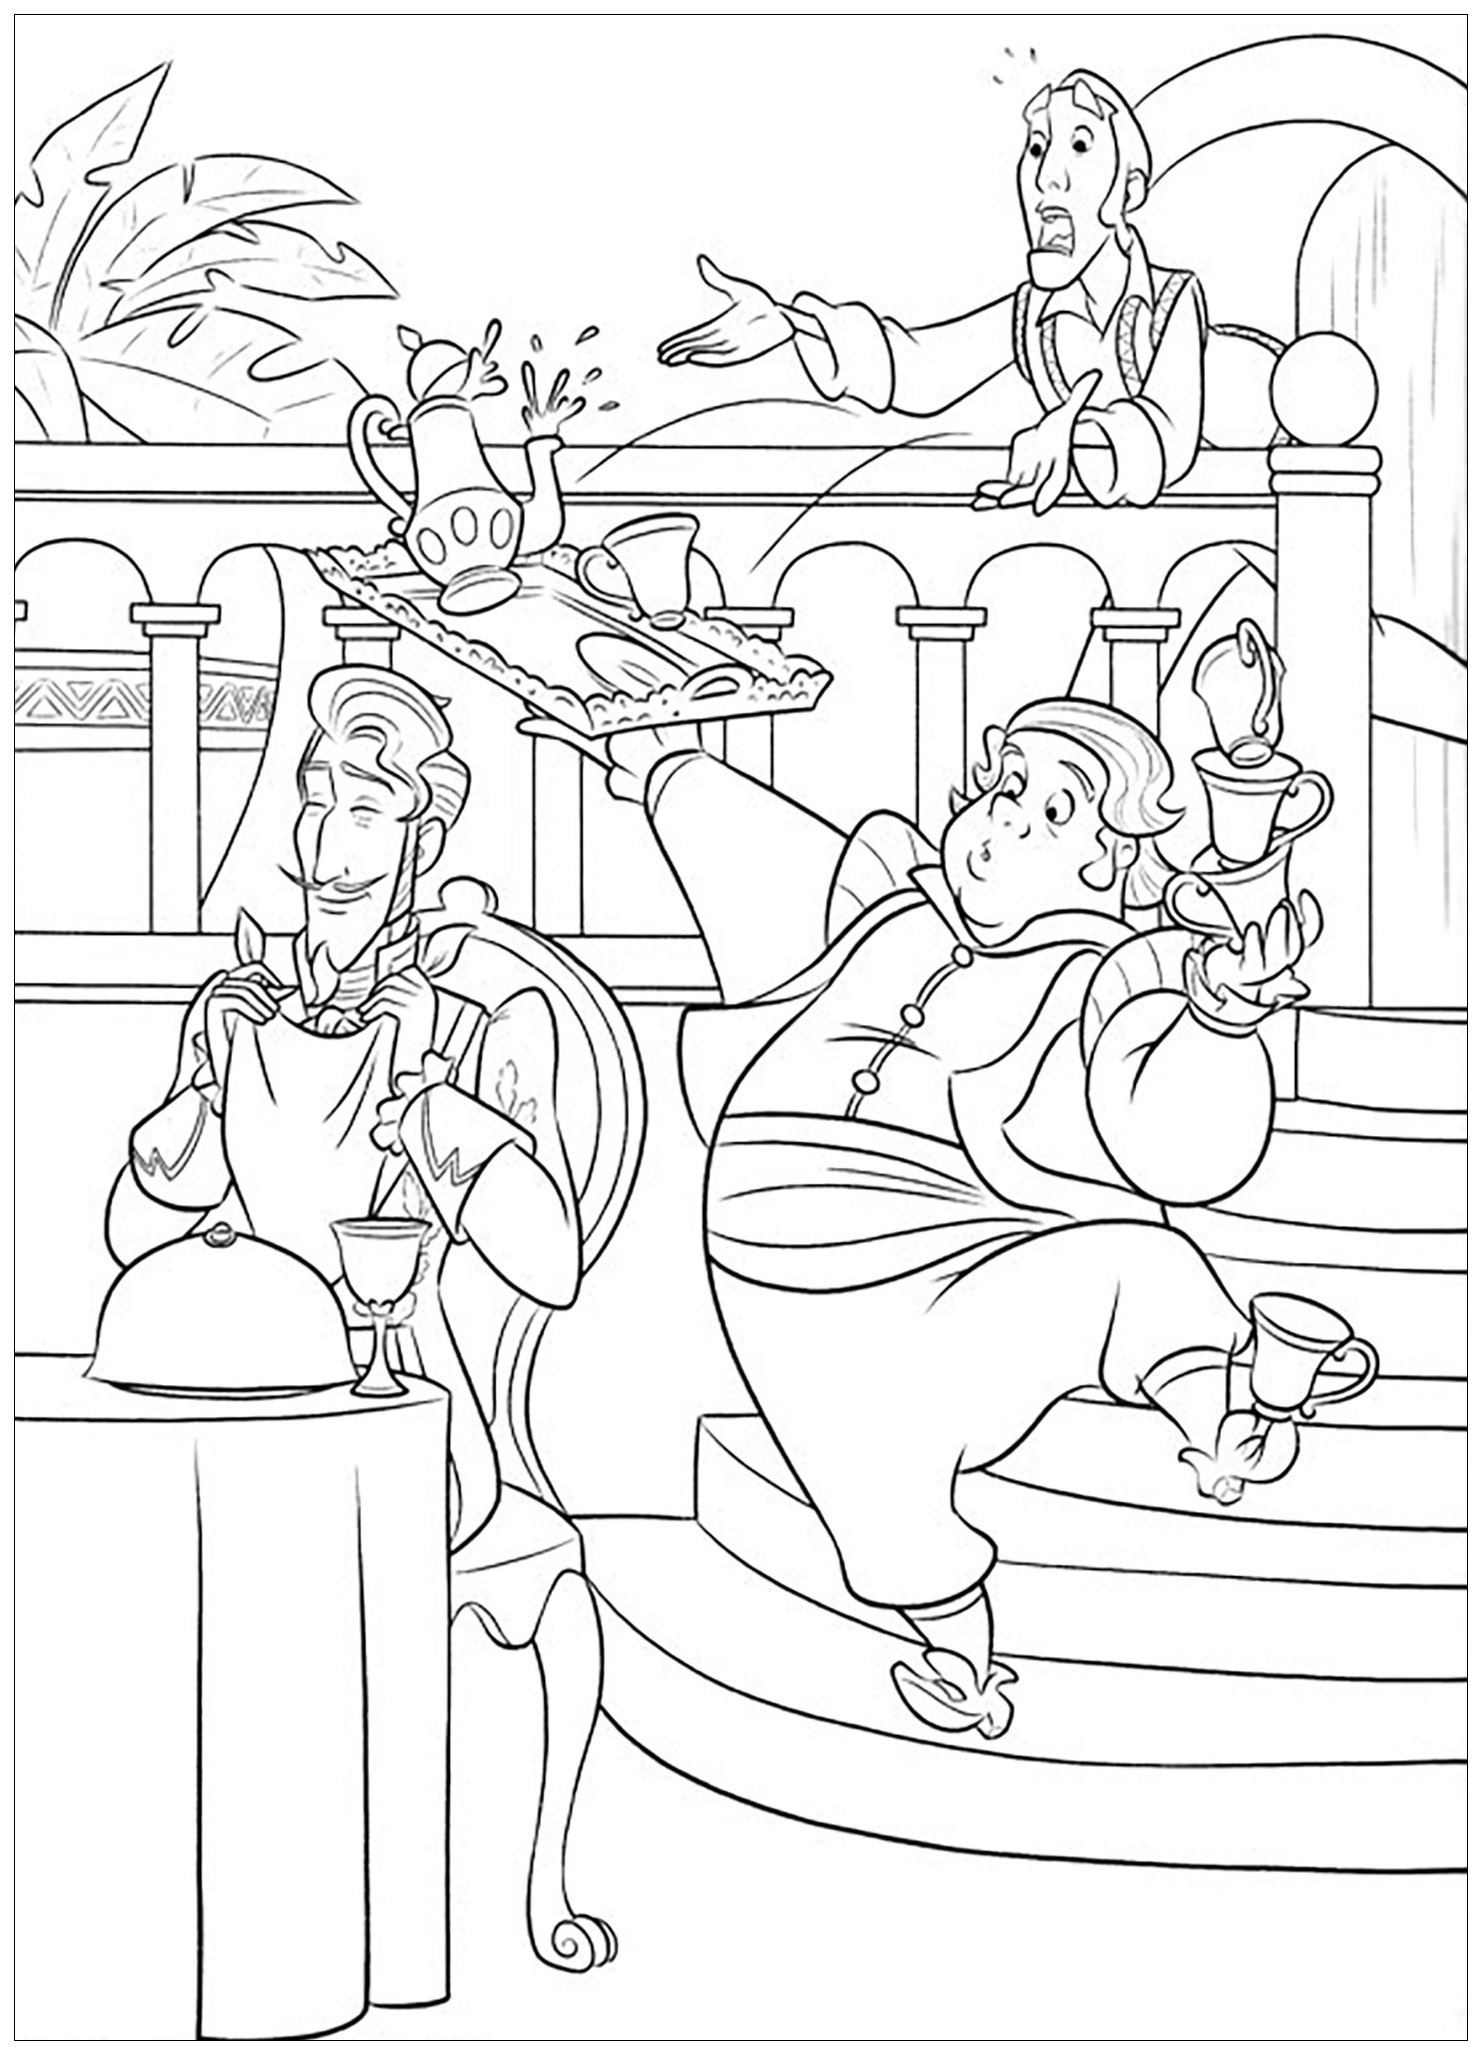 Elena Avalor coloring page to print and color